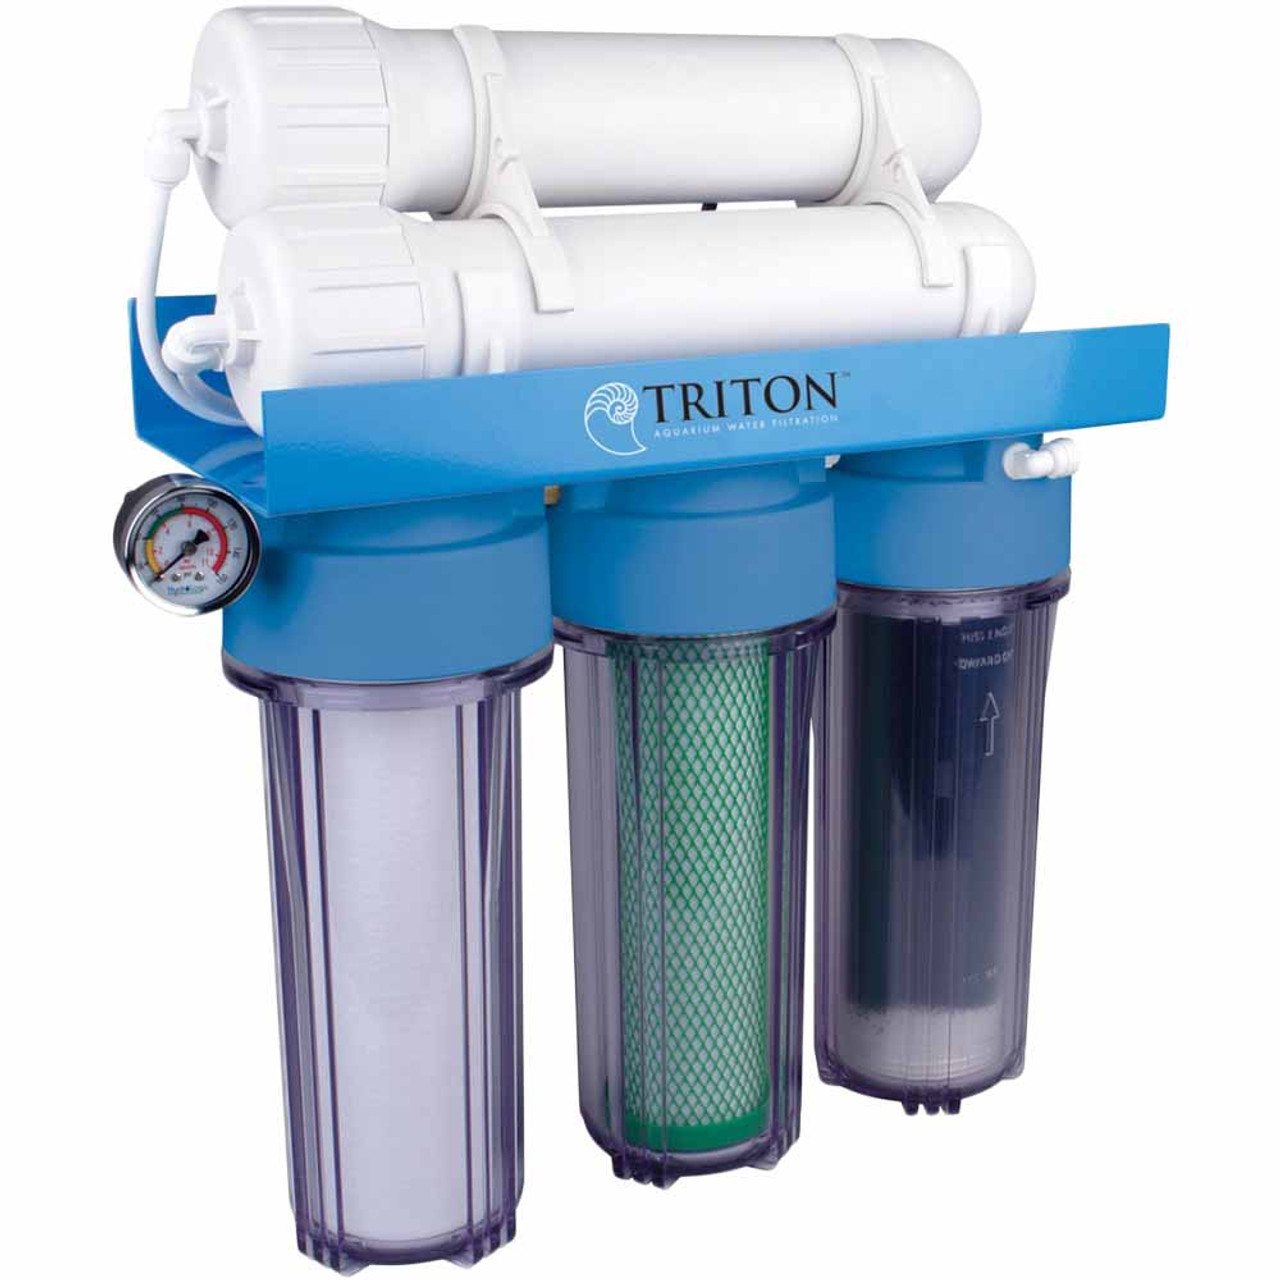 Triton RO|DI200 Reef Aquarium Water Filter by Hydro-Logic